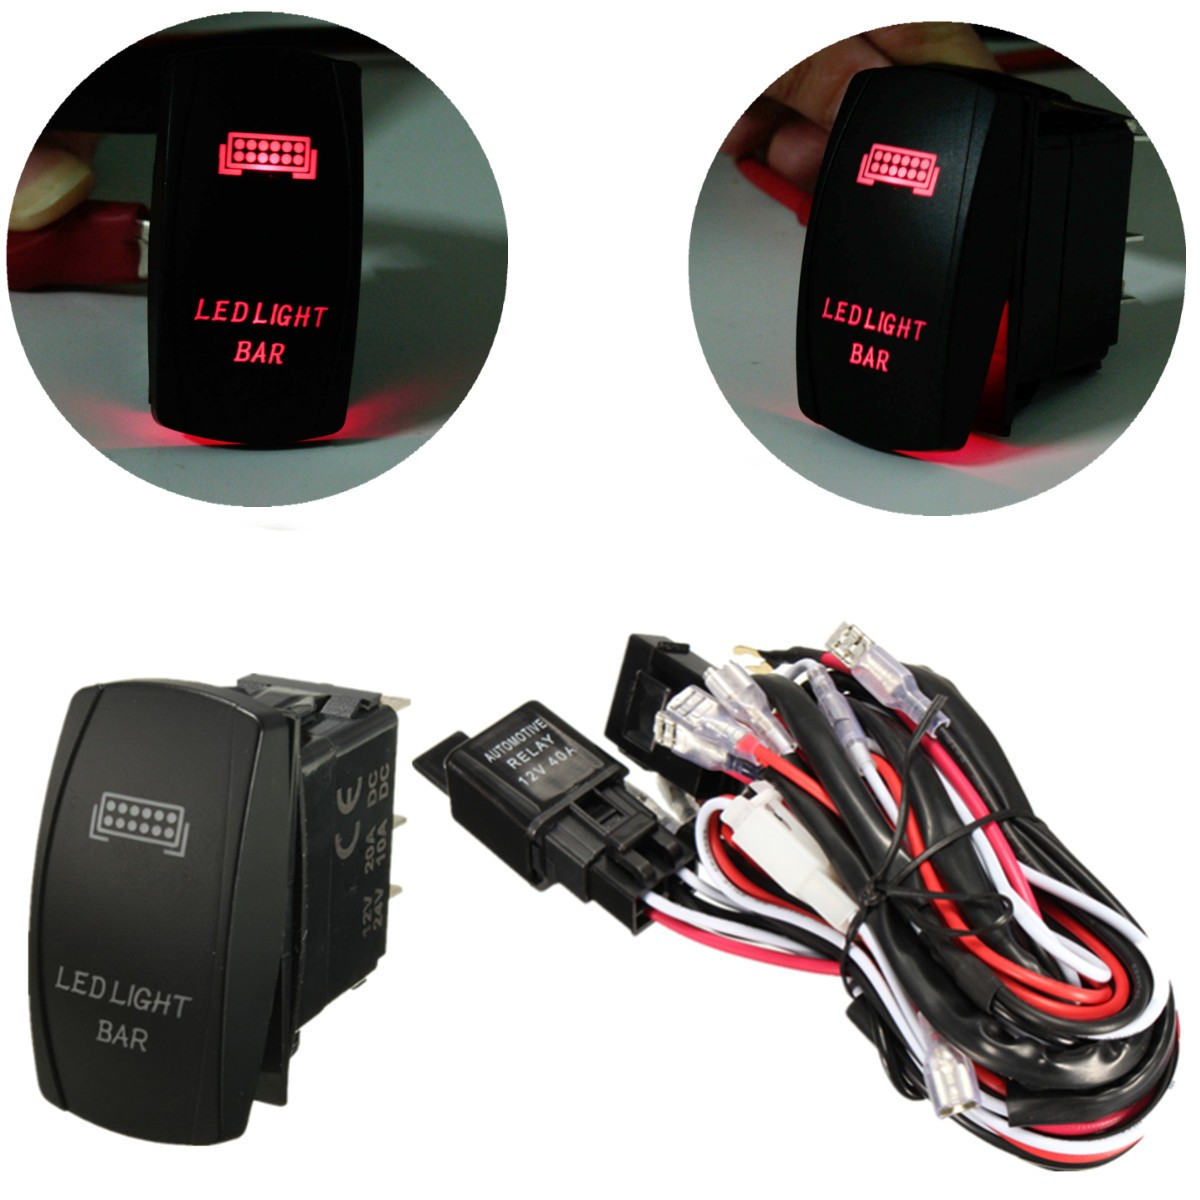 hight resolution of rocker switch wiring harness 12v 40a 300w relay fuse led light bar 5 pin laser matcc walmart com